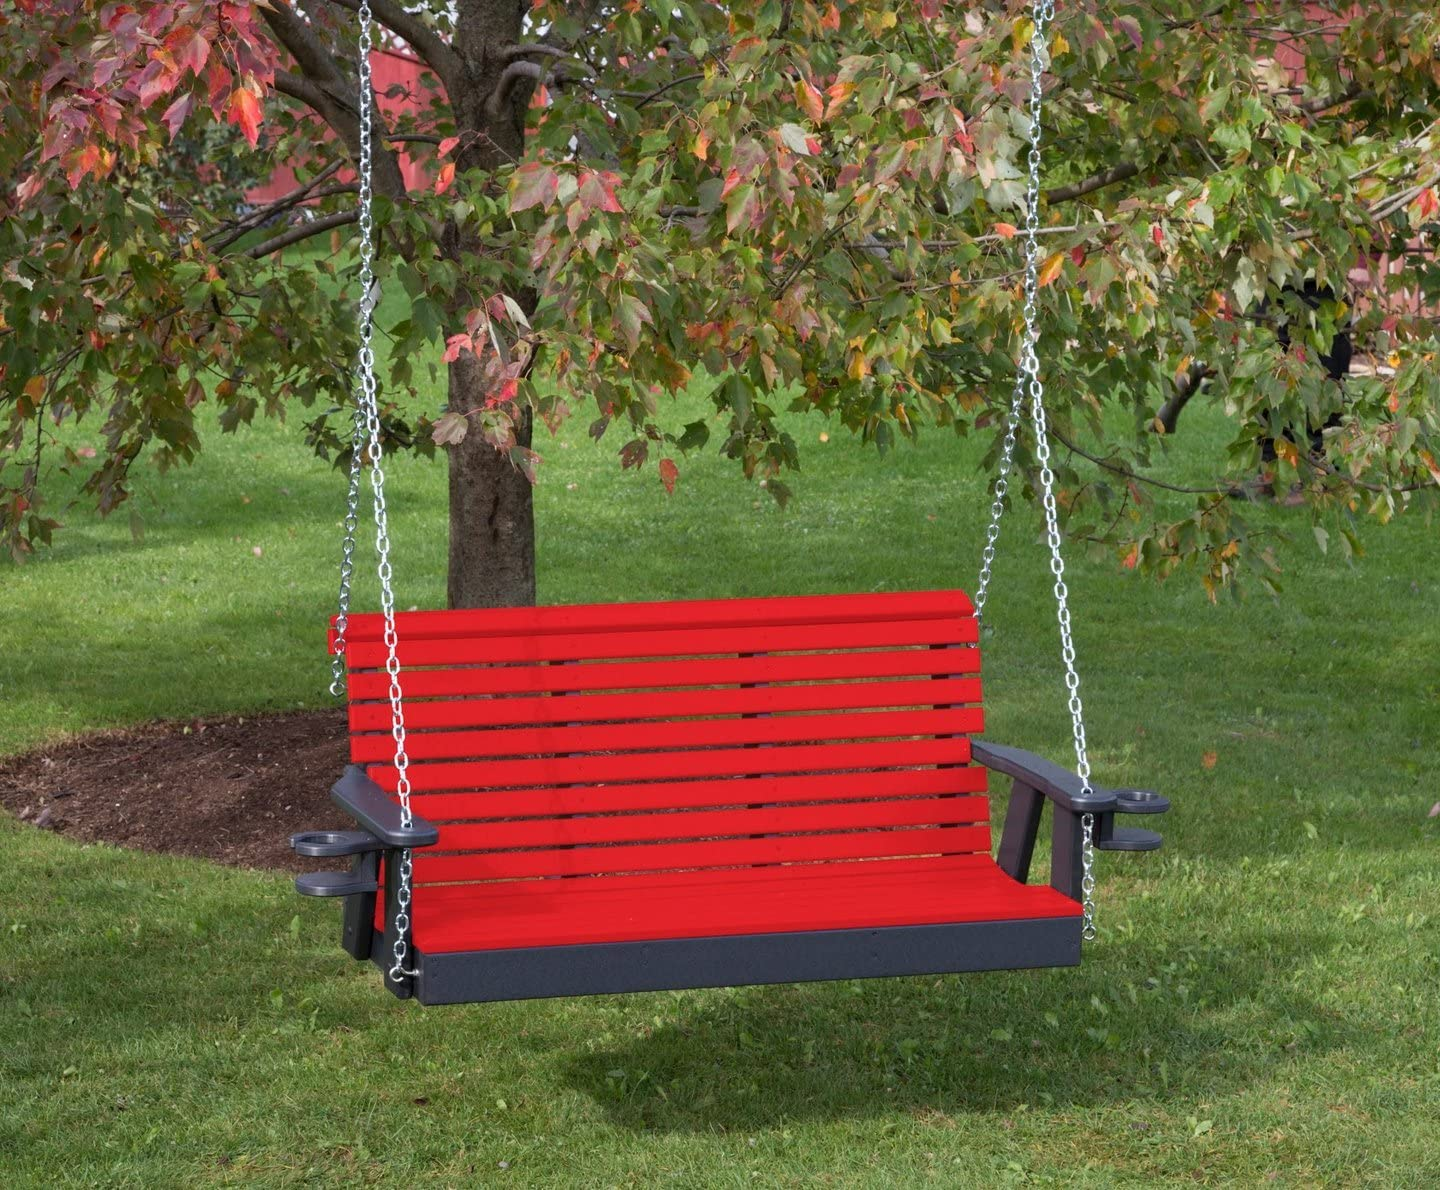 Ecommersify Inc 5FT-Bright San Diego Mall Spasm price RED-Poly Lumber ROLL Swing Back Porch